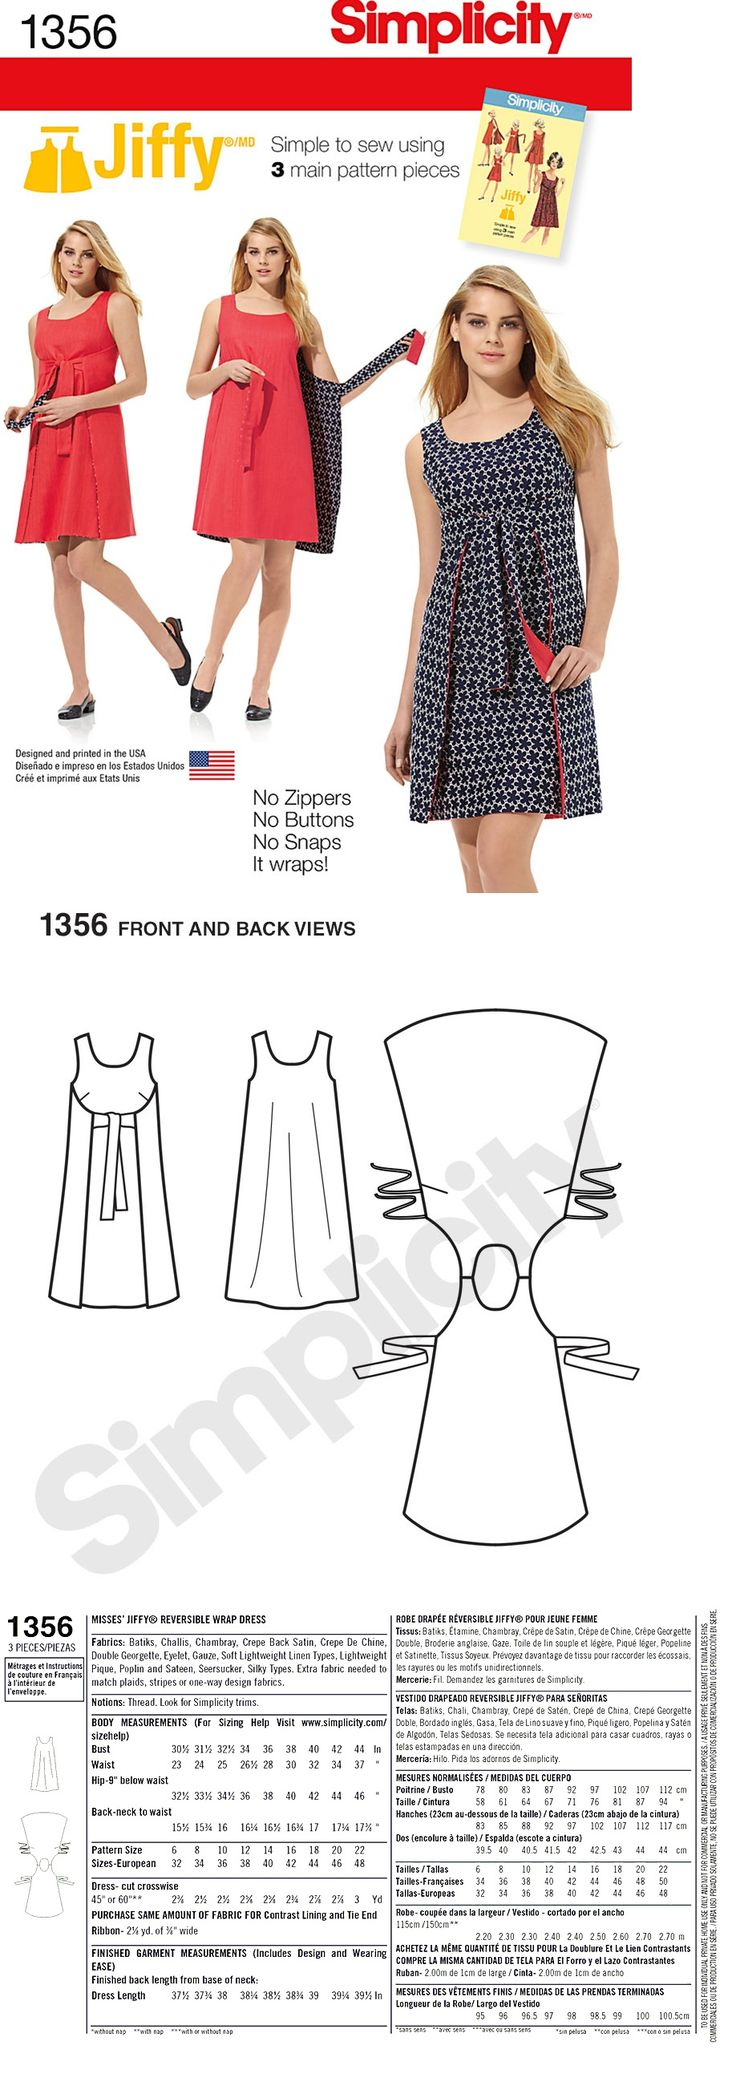 Wrap Dress Image Source: http://sewing.patternreview.com/Patterns/65590